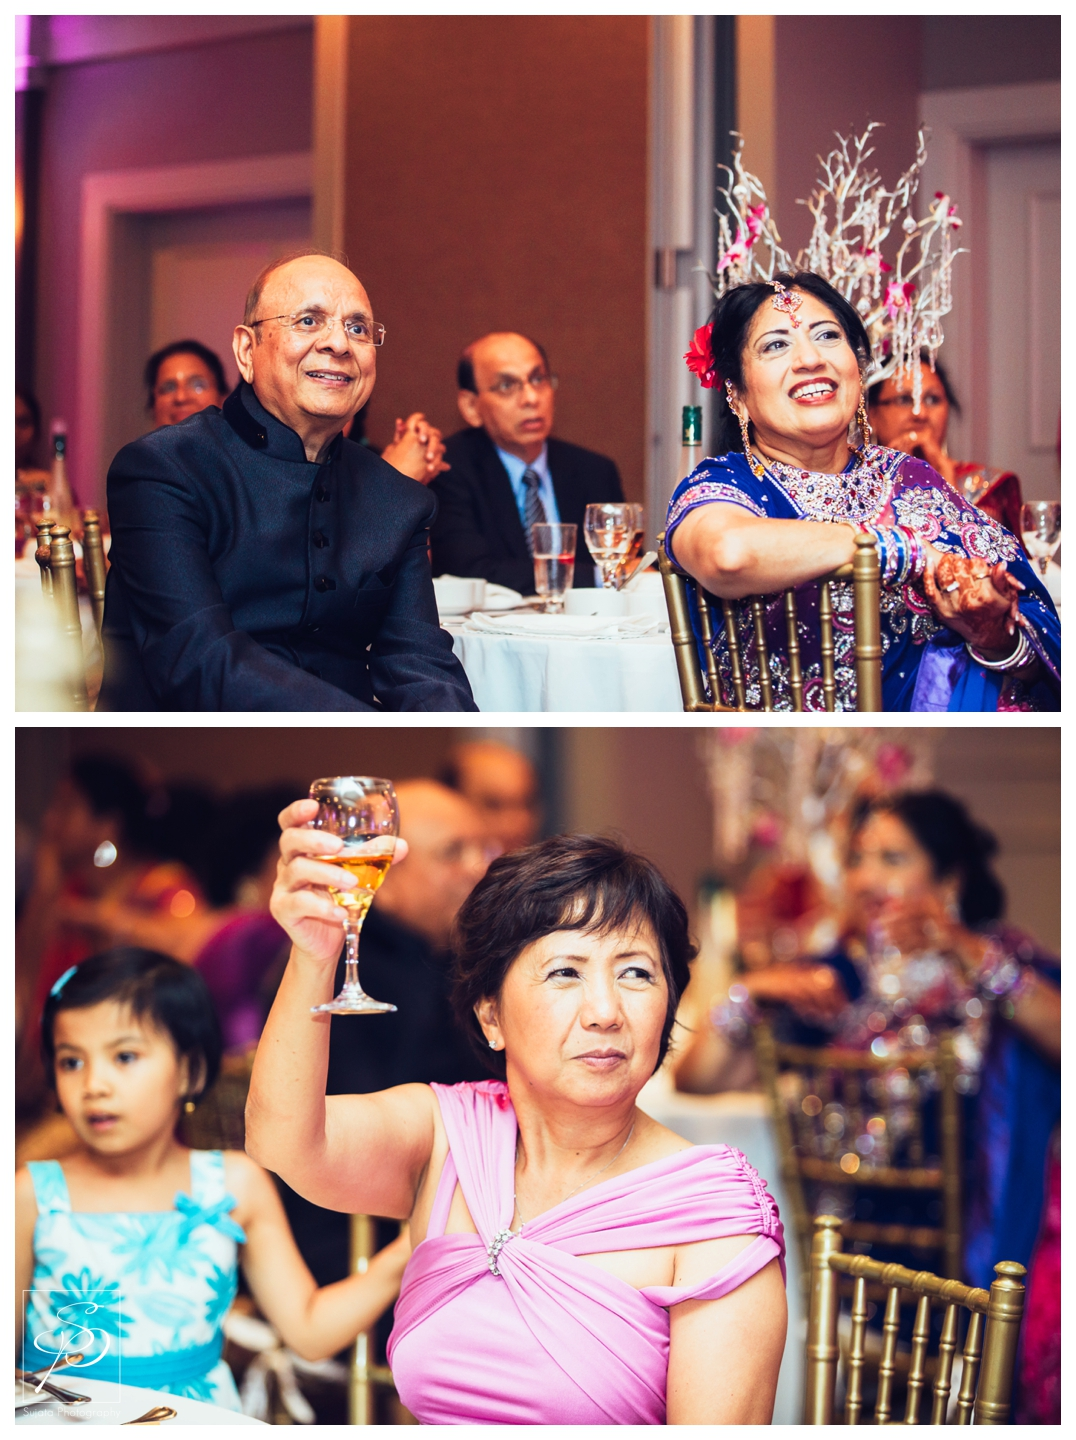 Parents toasting the bride and groom at reception Calgary